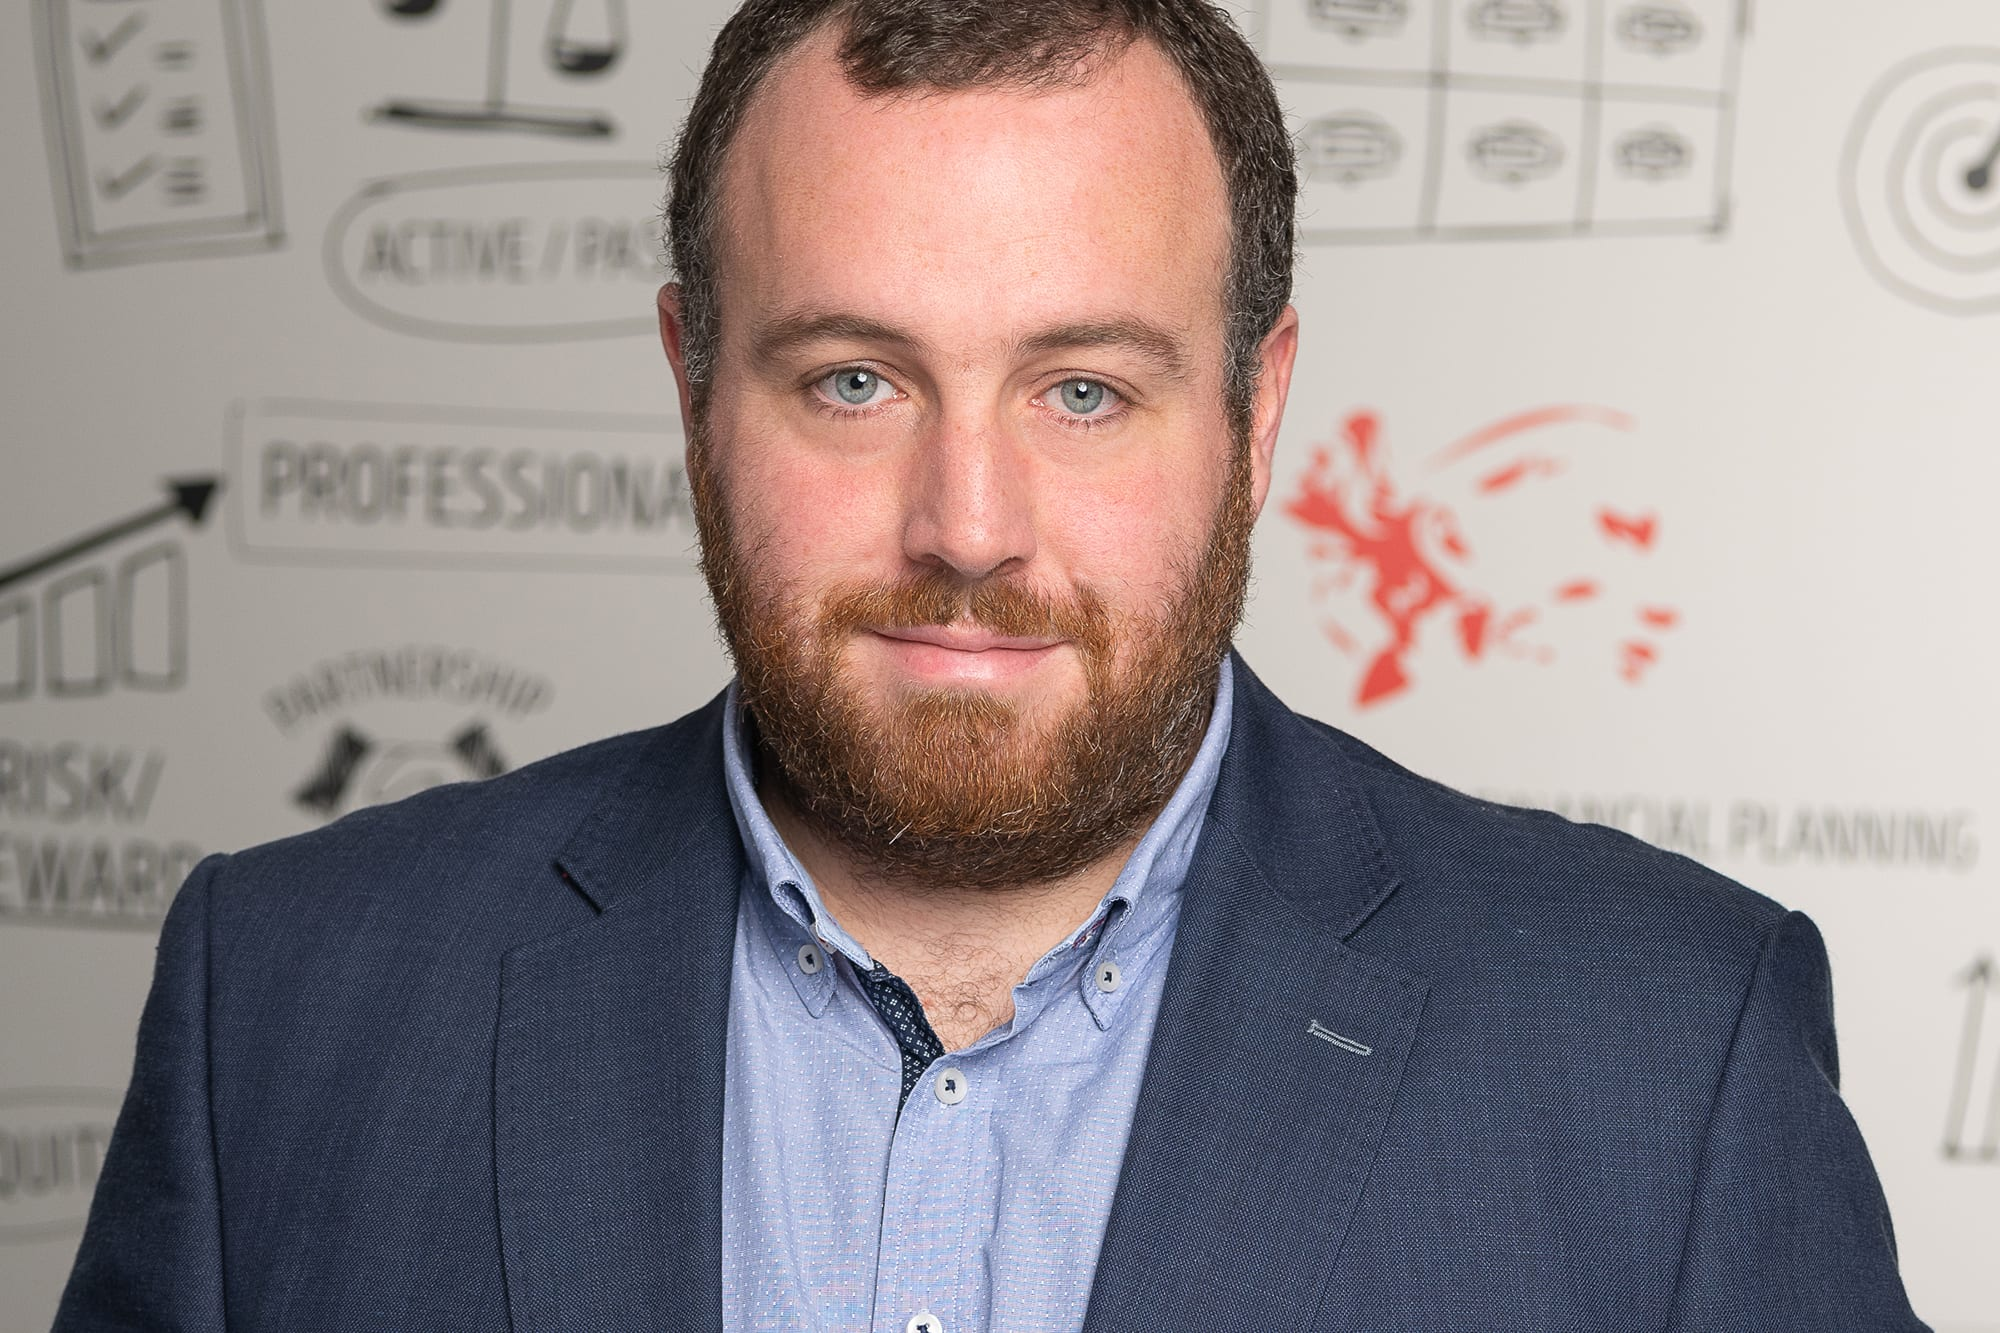 Cian Callaghan, Head of Financial Planning at Metis Ireland